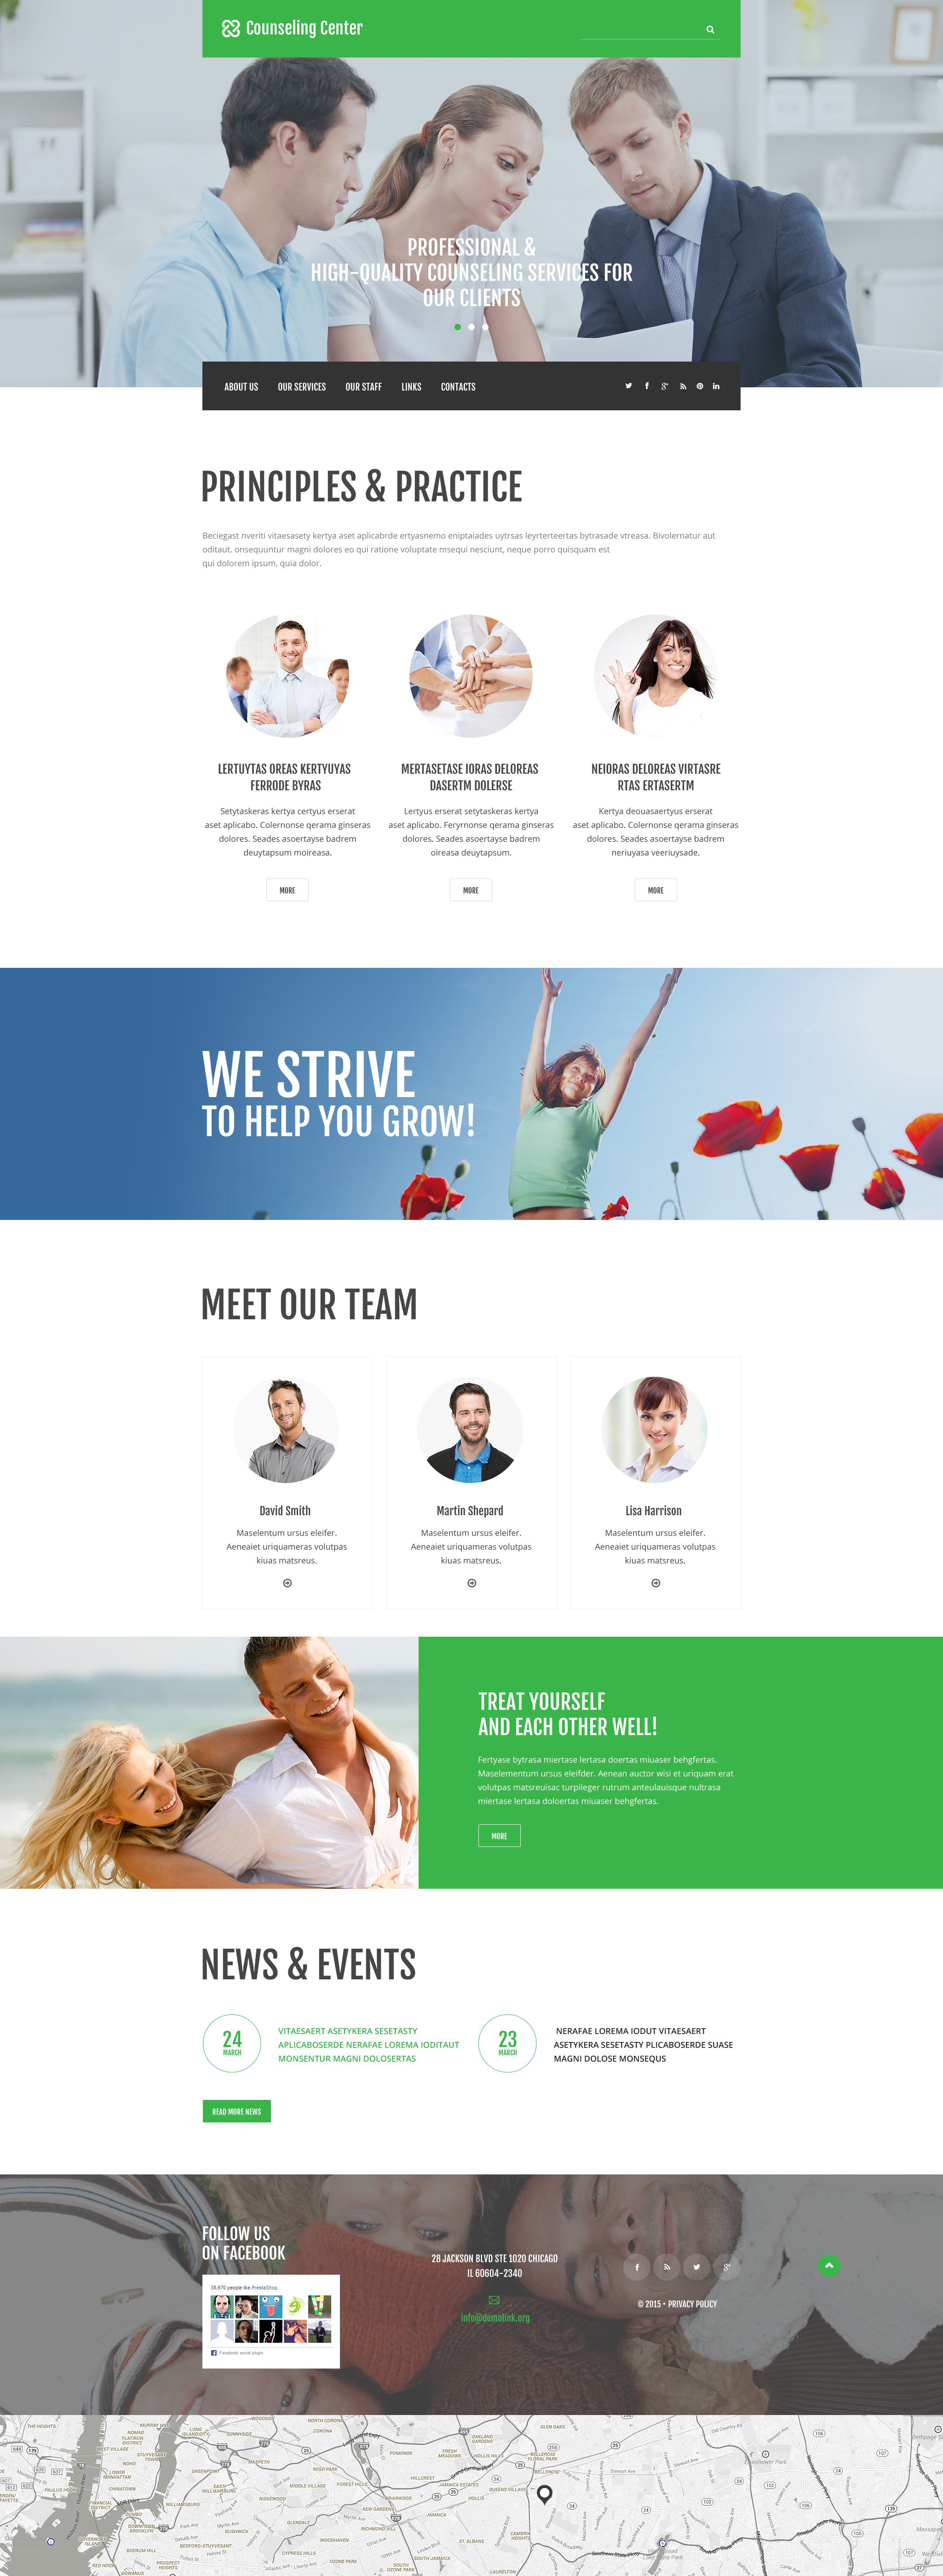 Counseling Center Website Template